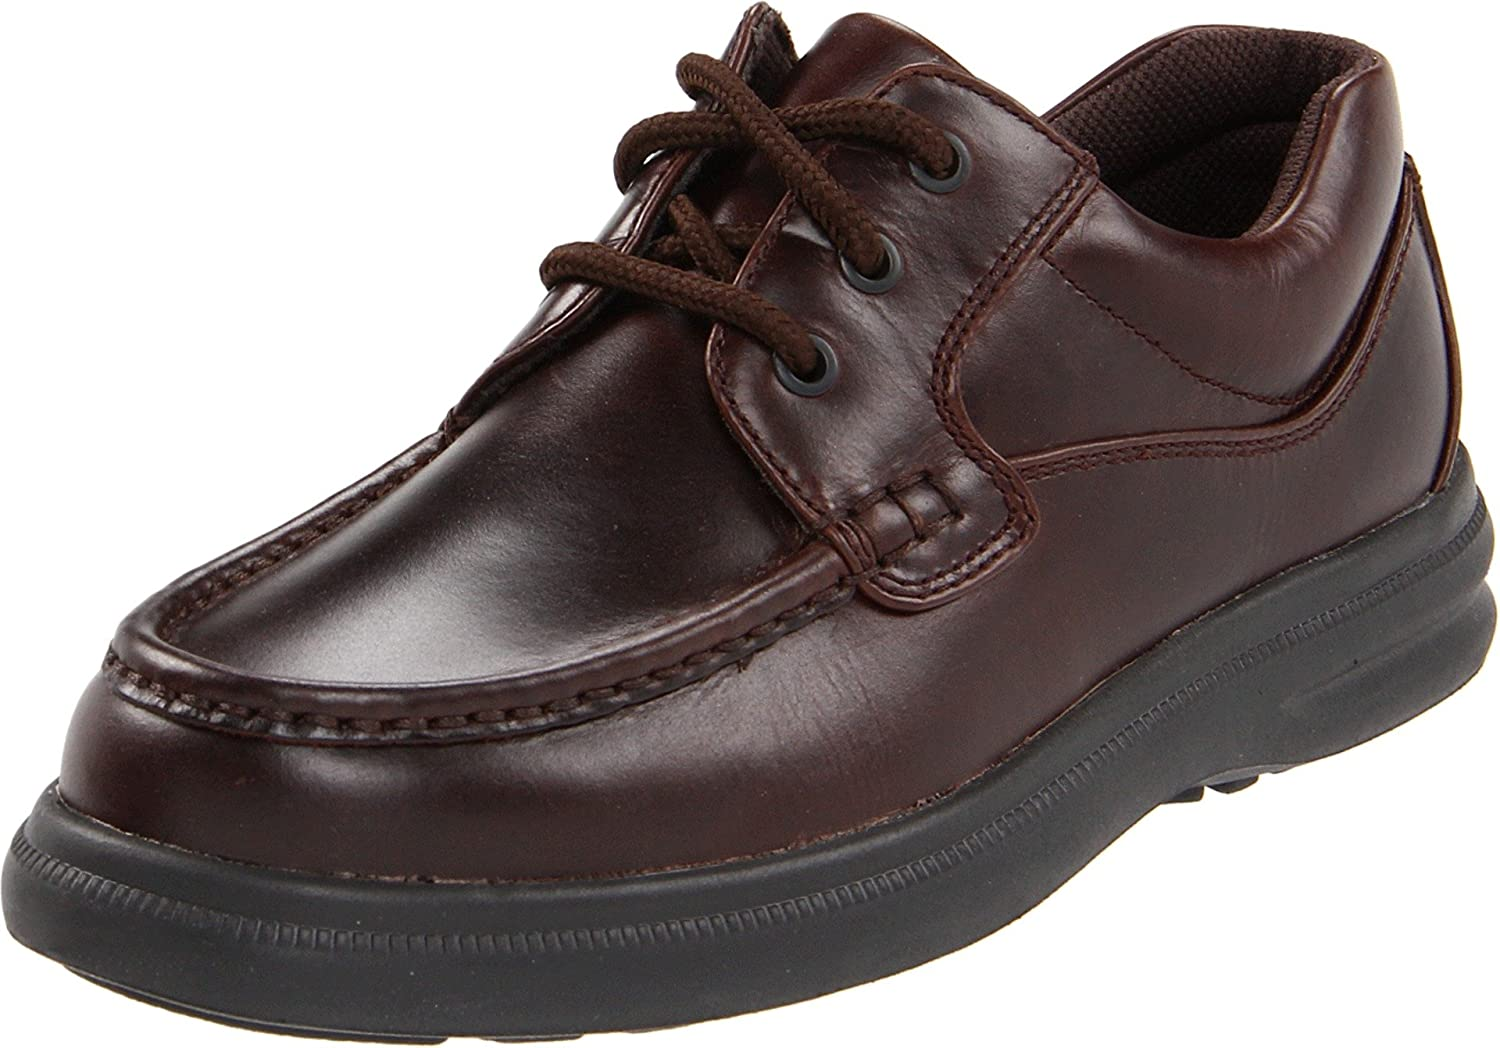 Hush Puppies Men's Gus Oxford B001AWWQ22 9 XW US|Dark Brown